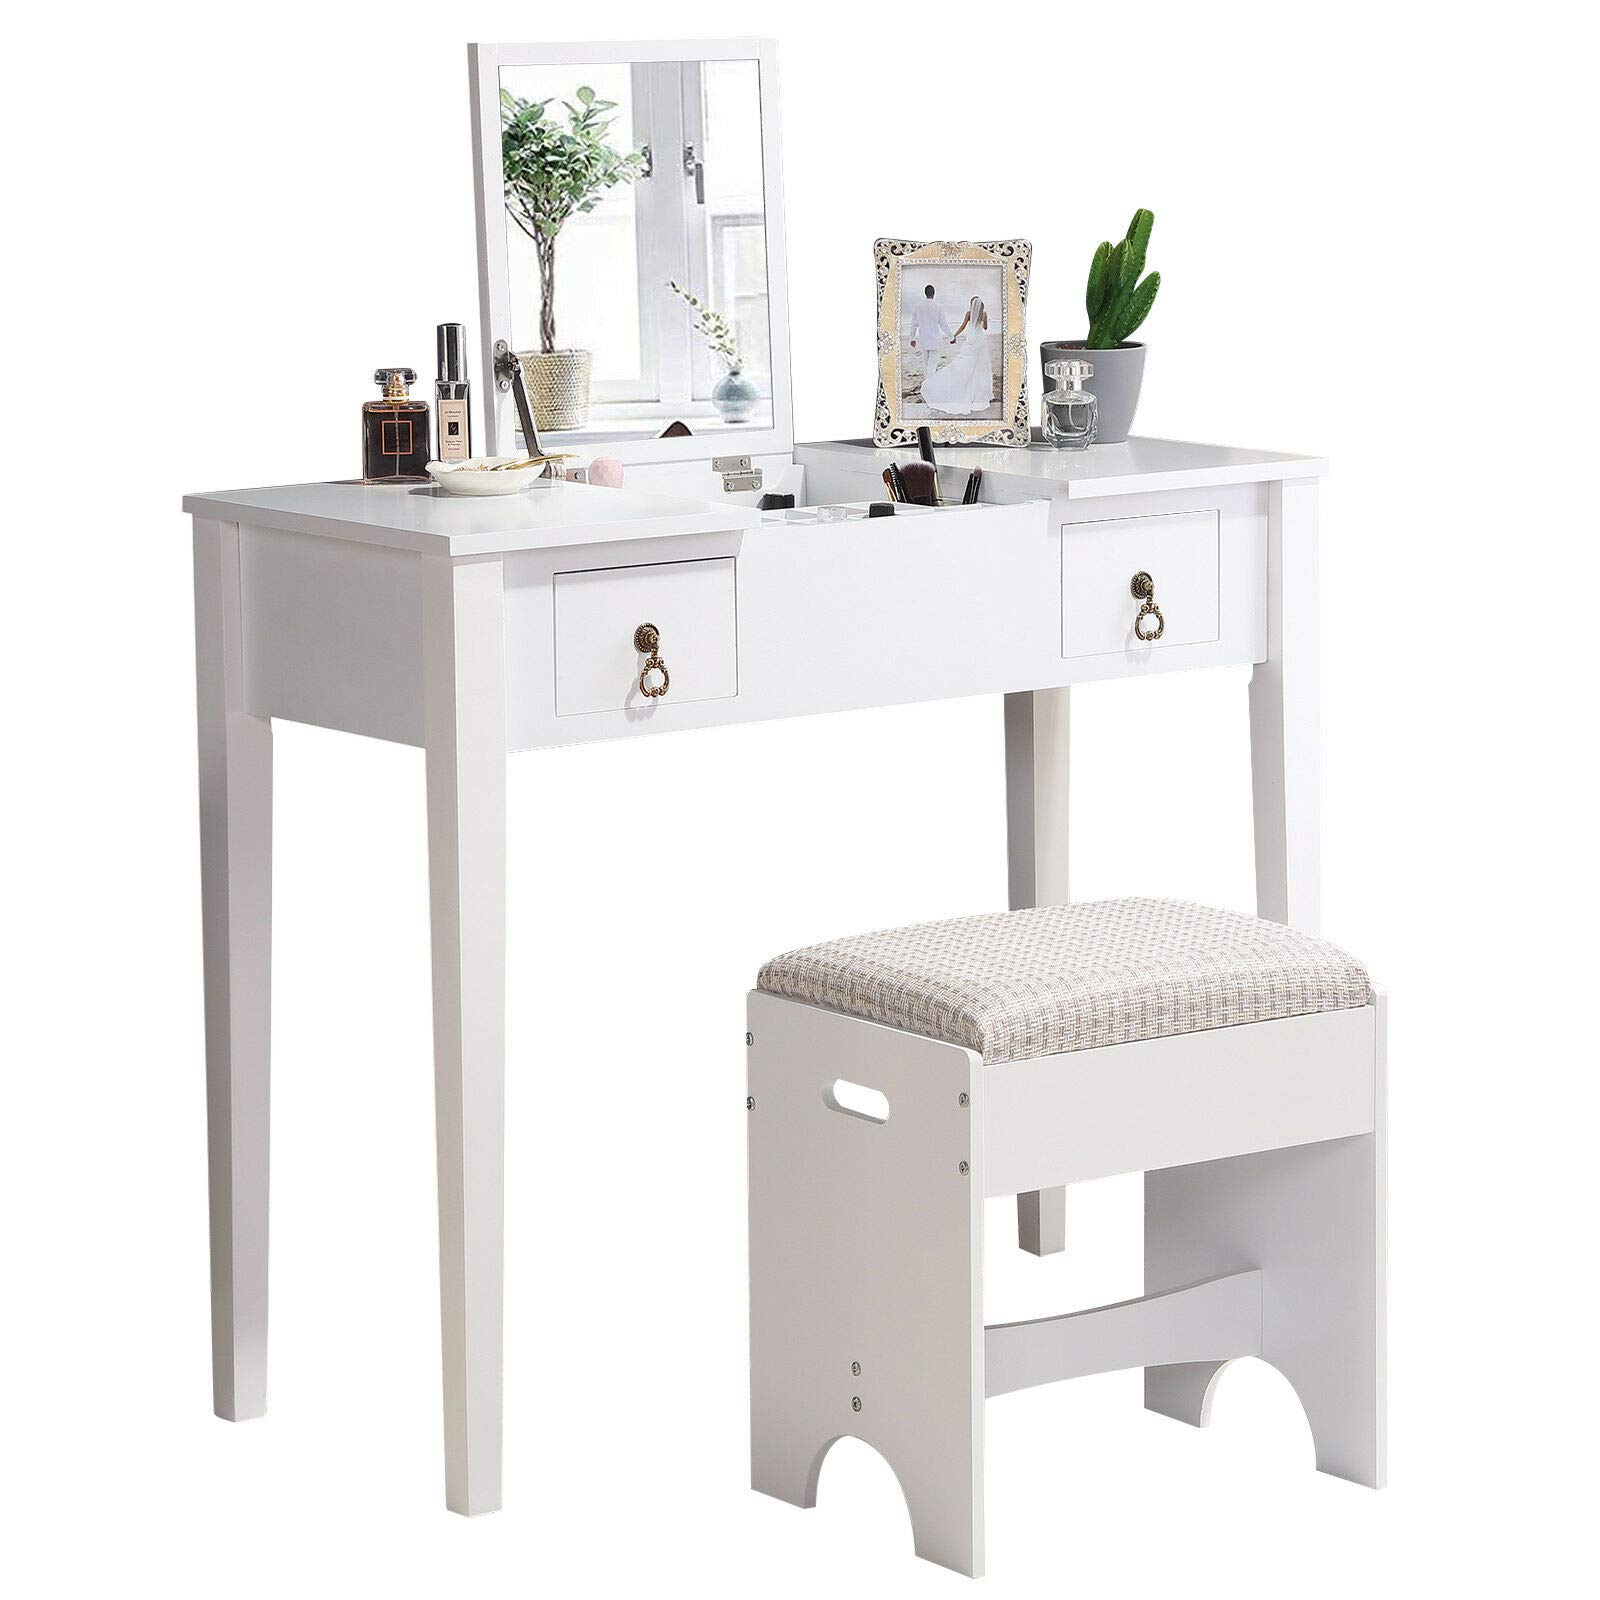 Issavara Mirror Makeup Vanity Dressing Table Set Stool Flip Top 2 Drawer Writing Desk Style Beauty White Bedroom Wood